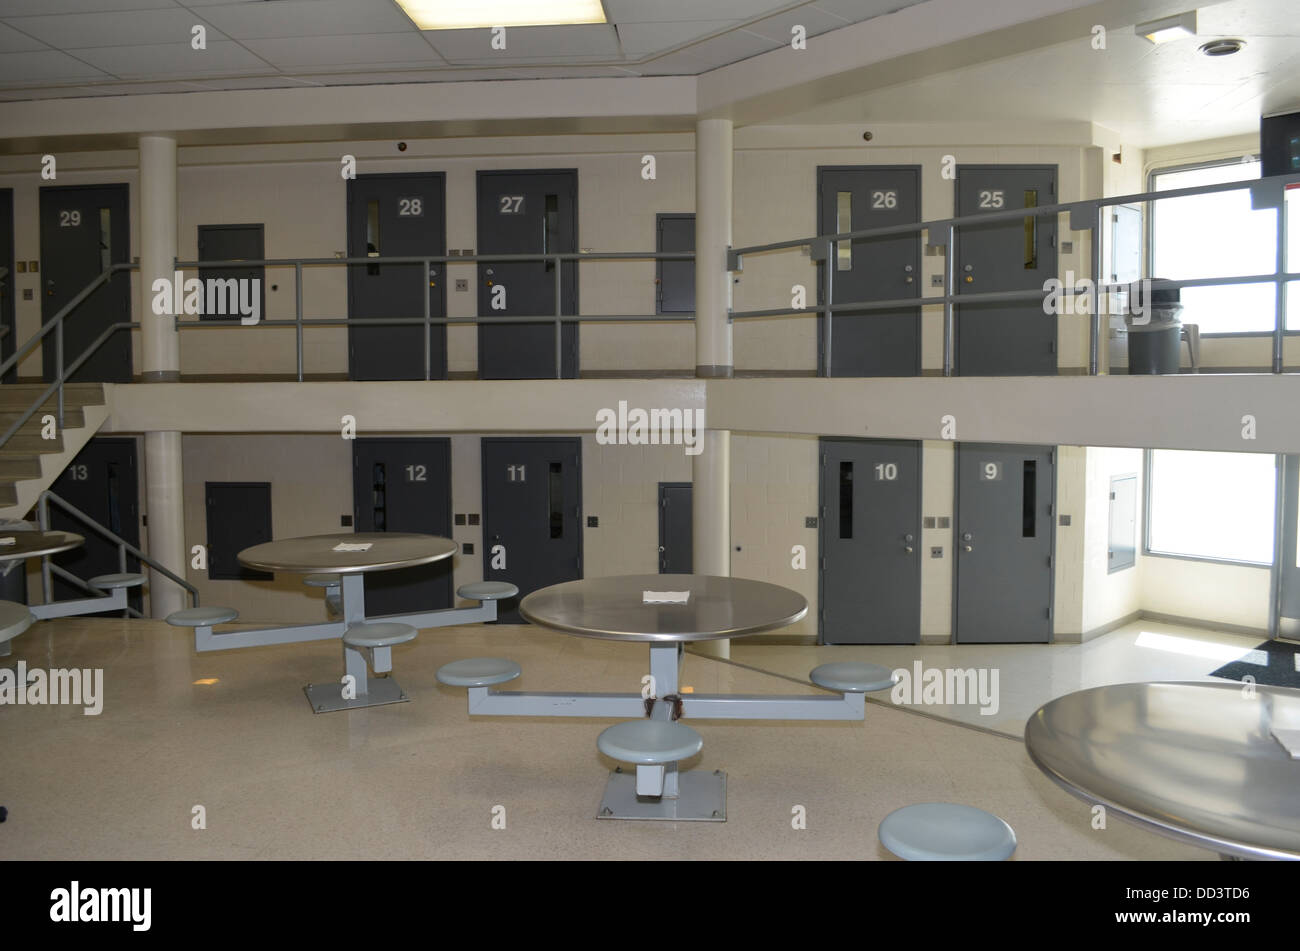 Housing unit at the Diagnostic and Evaluation Center, a maximum secuirty prison in Lincoln Nebraska. - Stock Image